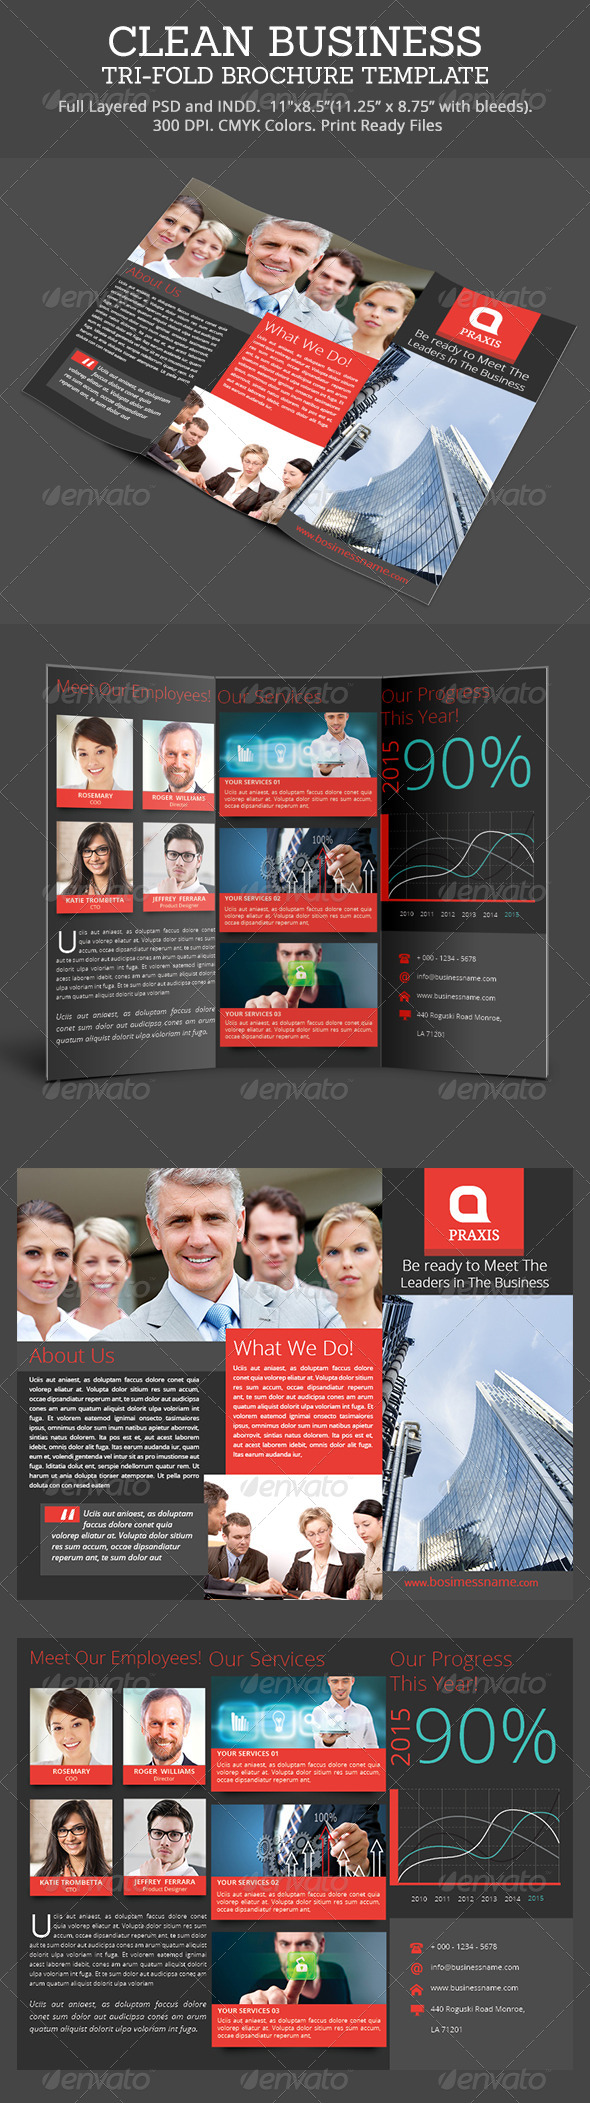 GraphicRiver Clean Business Tri-Fold Brochure 7764475